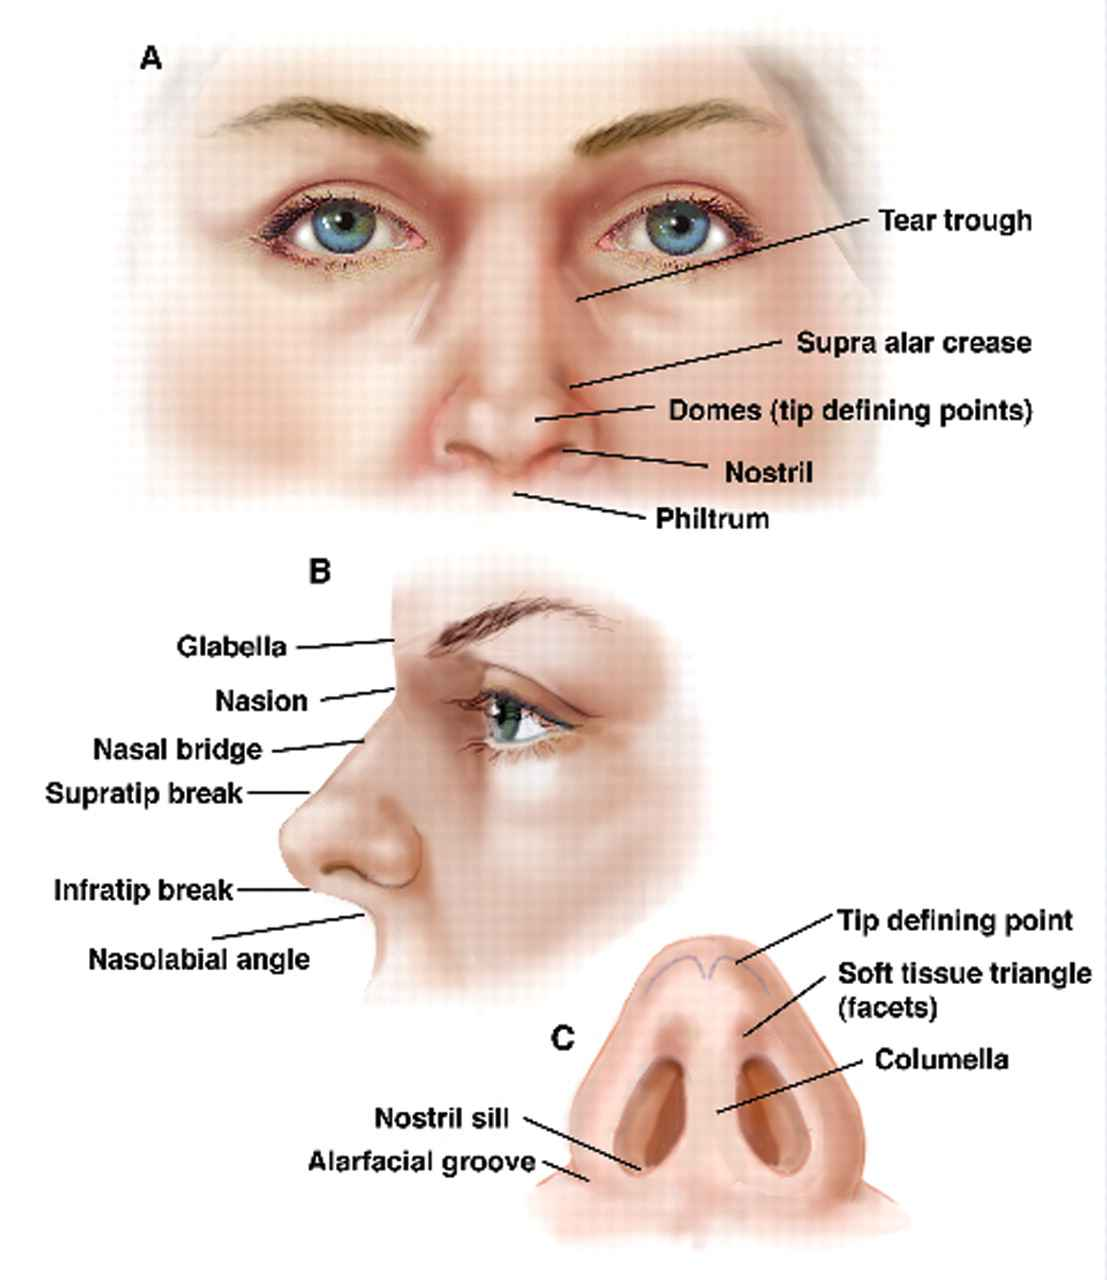 human anatomy nose diagram - coordstudenti, Cephalic Vein